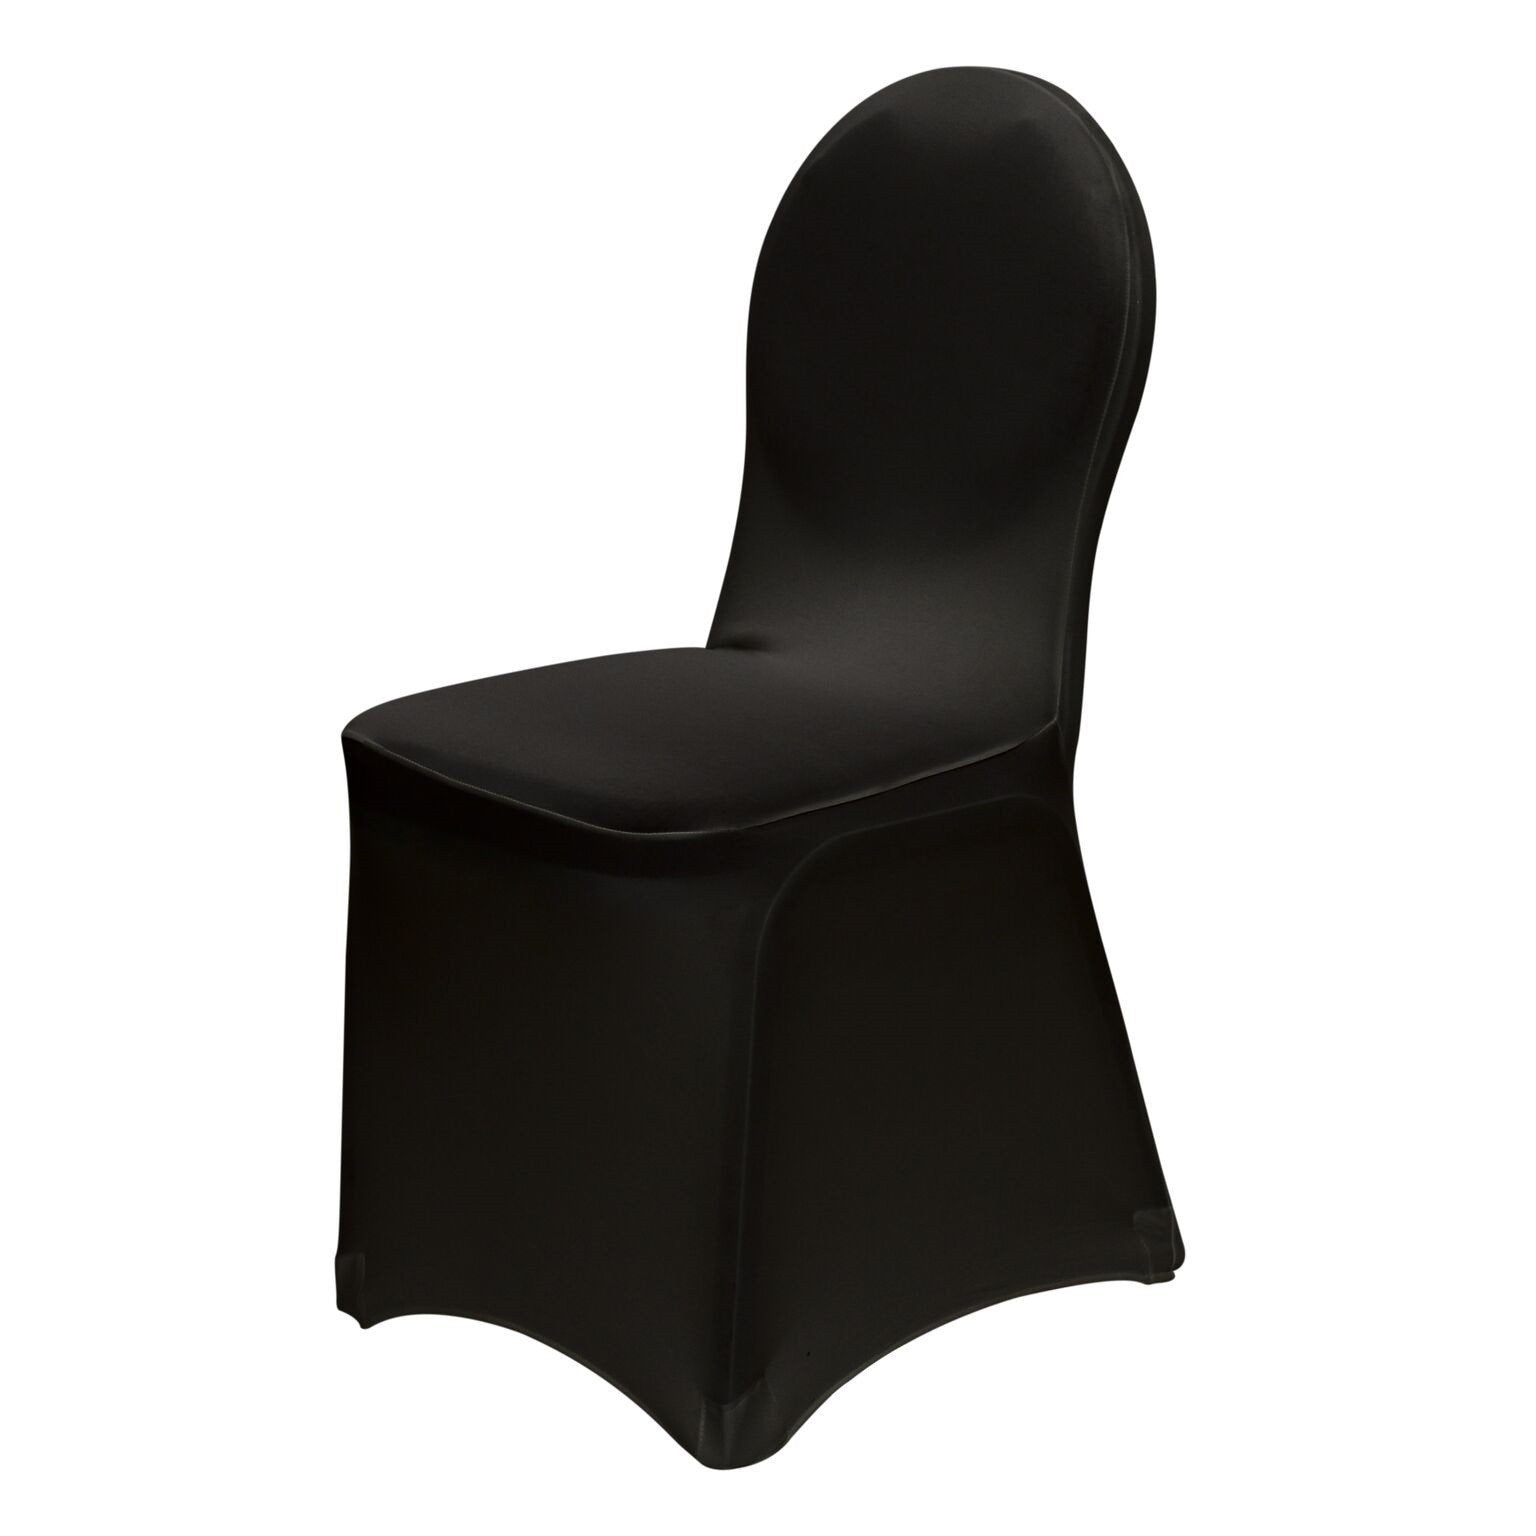 rent chair covers wedding chairs event party rentals near me cover rental spandex linen